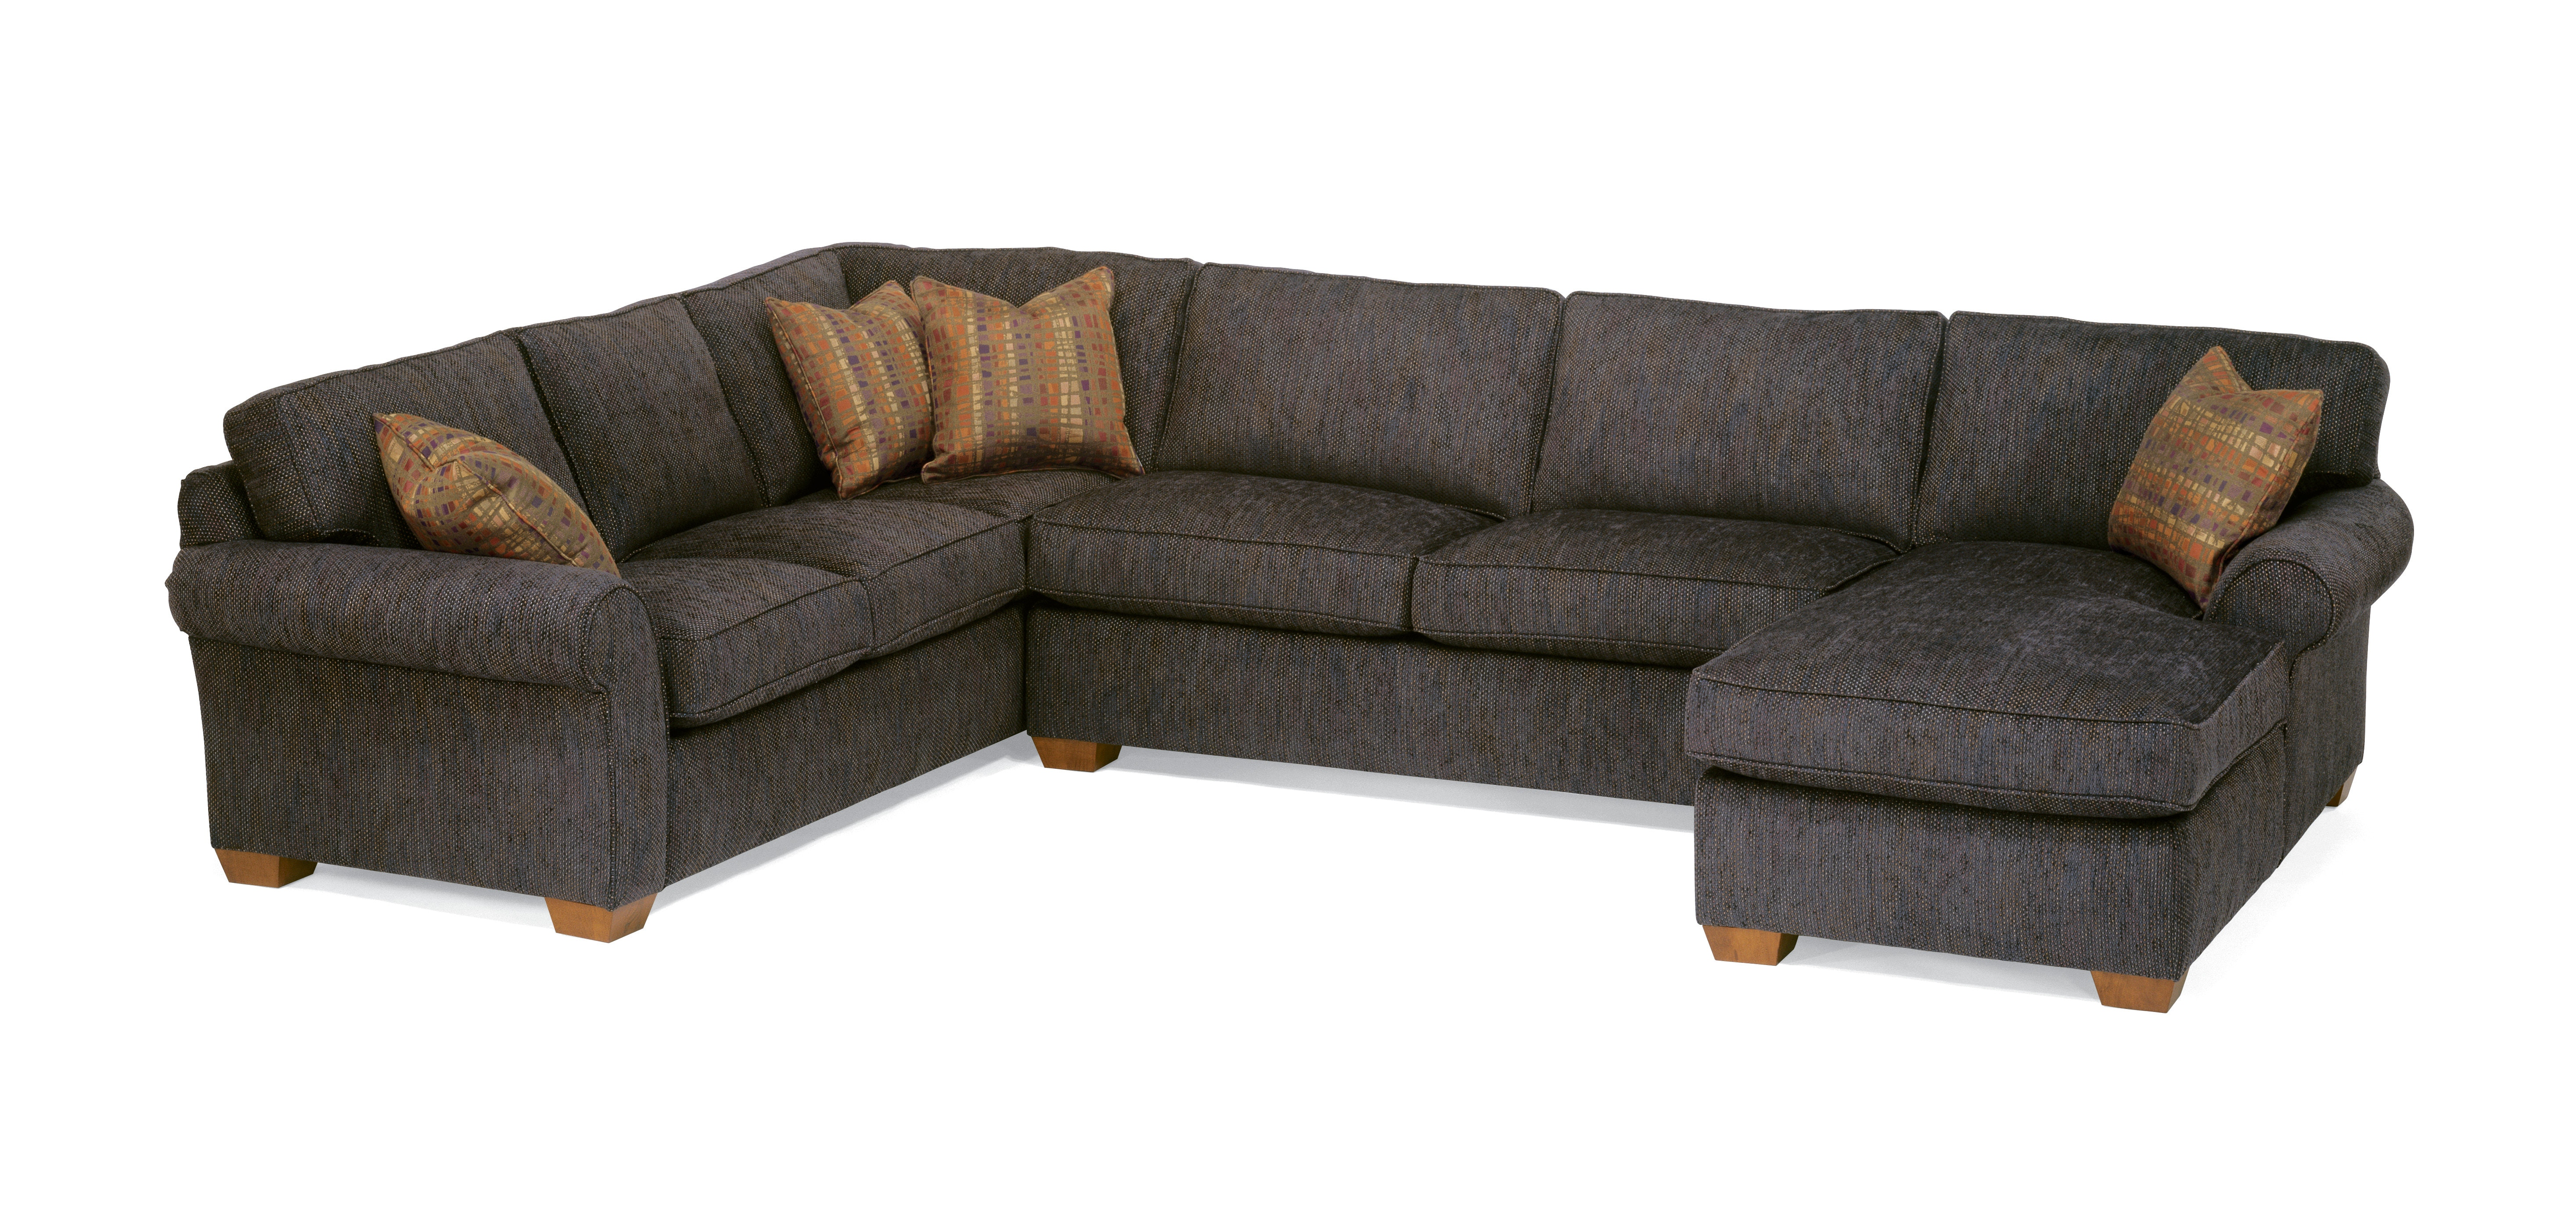 Flexsteel Vail Fabric Sectional 7305 SECT